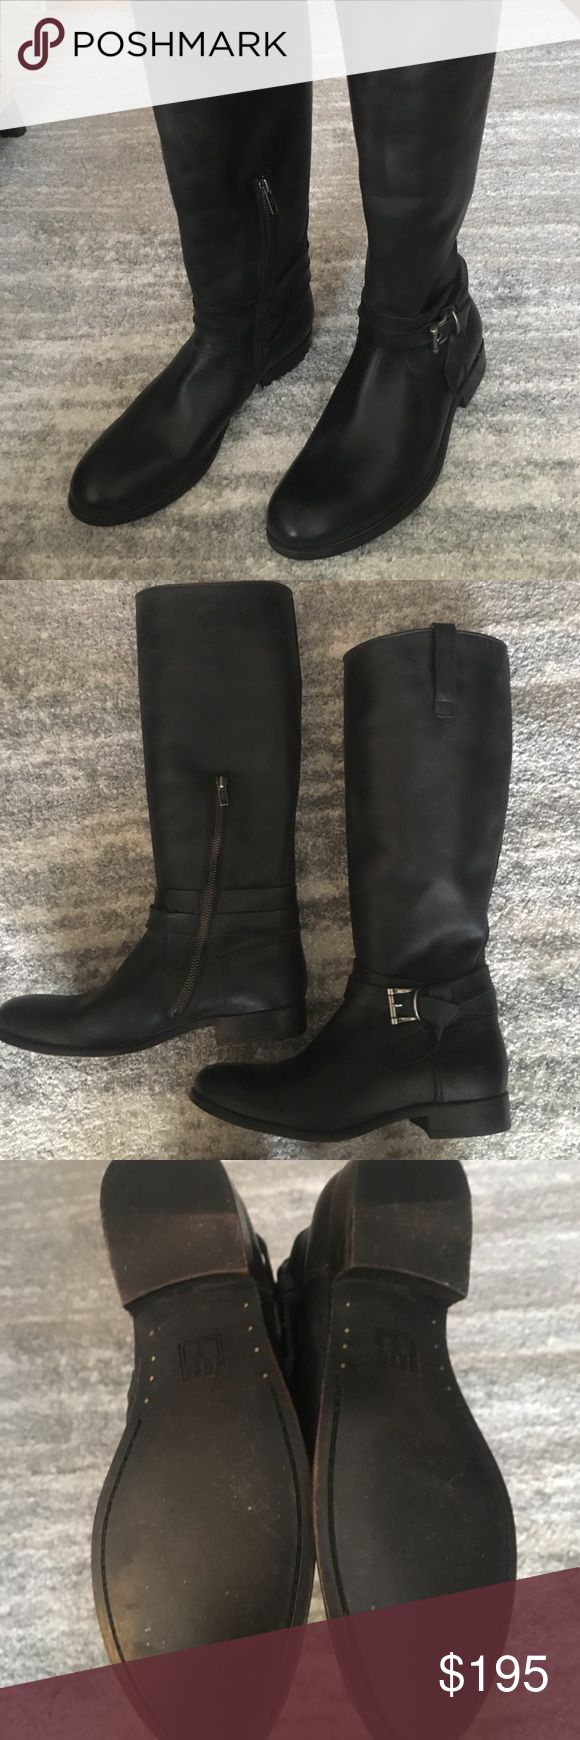 Never worn Frye riding boots Size 10 Frye riding boots - never worn!! Style is meant to be distressed and runs true to size Frye Shoes Combat & Moto Boots